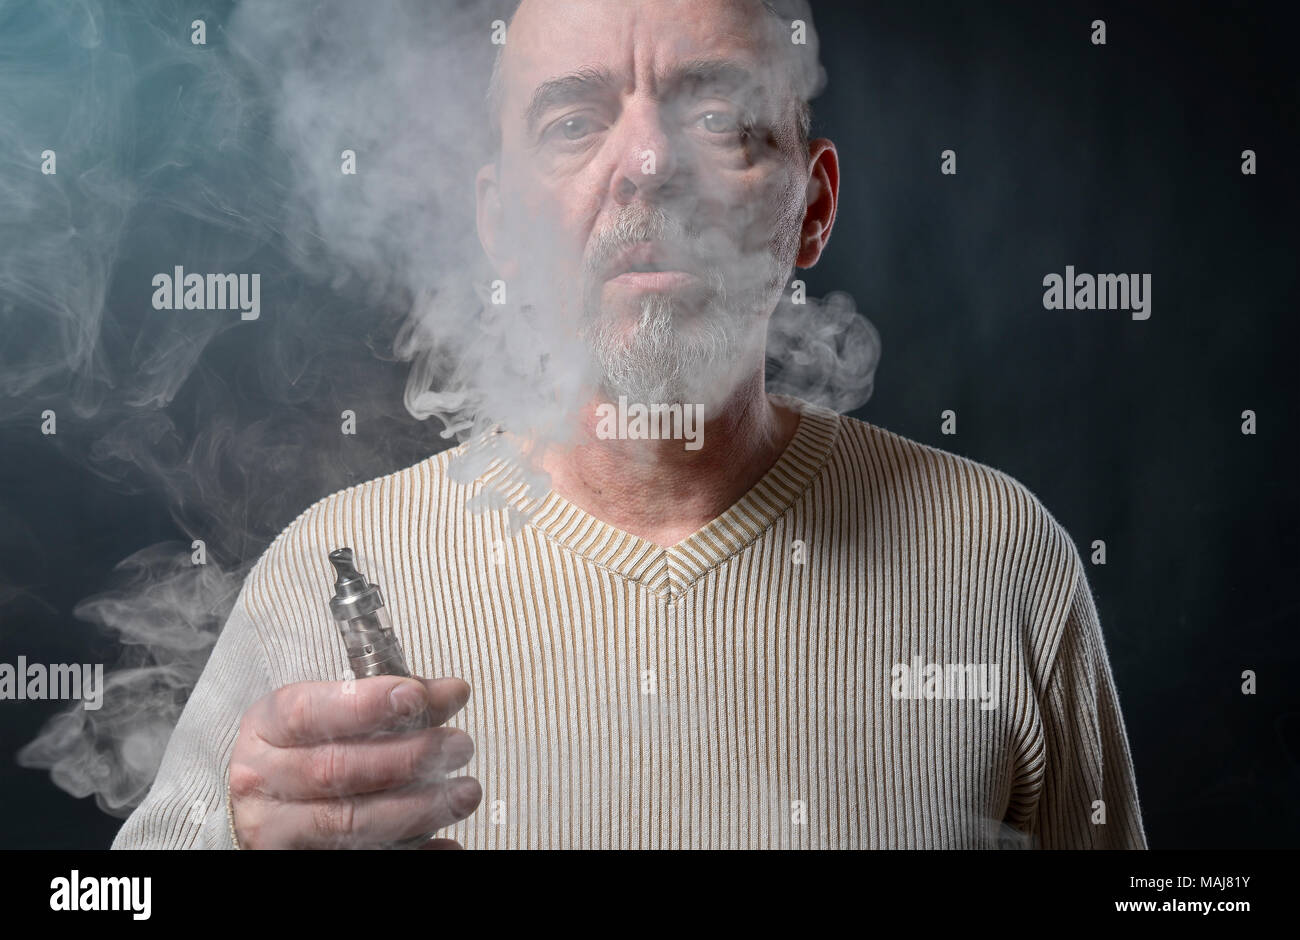 portrait of a man with beard who is vaping - Stock Image